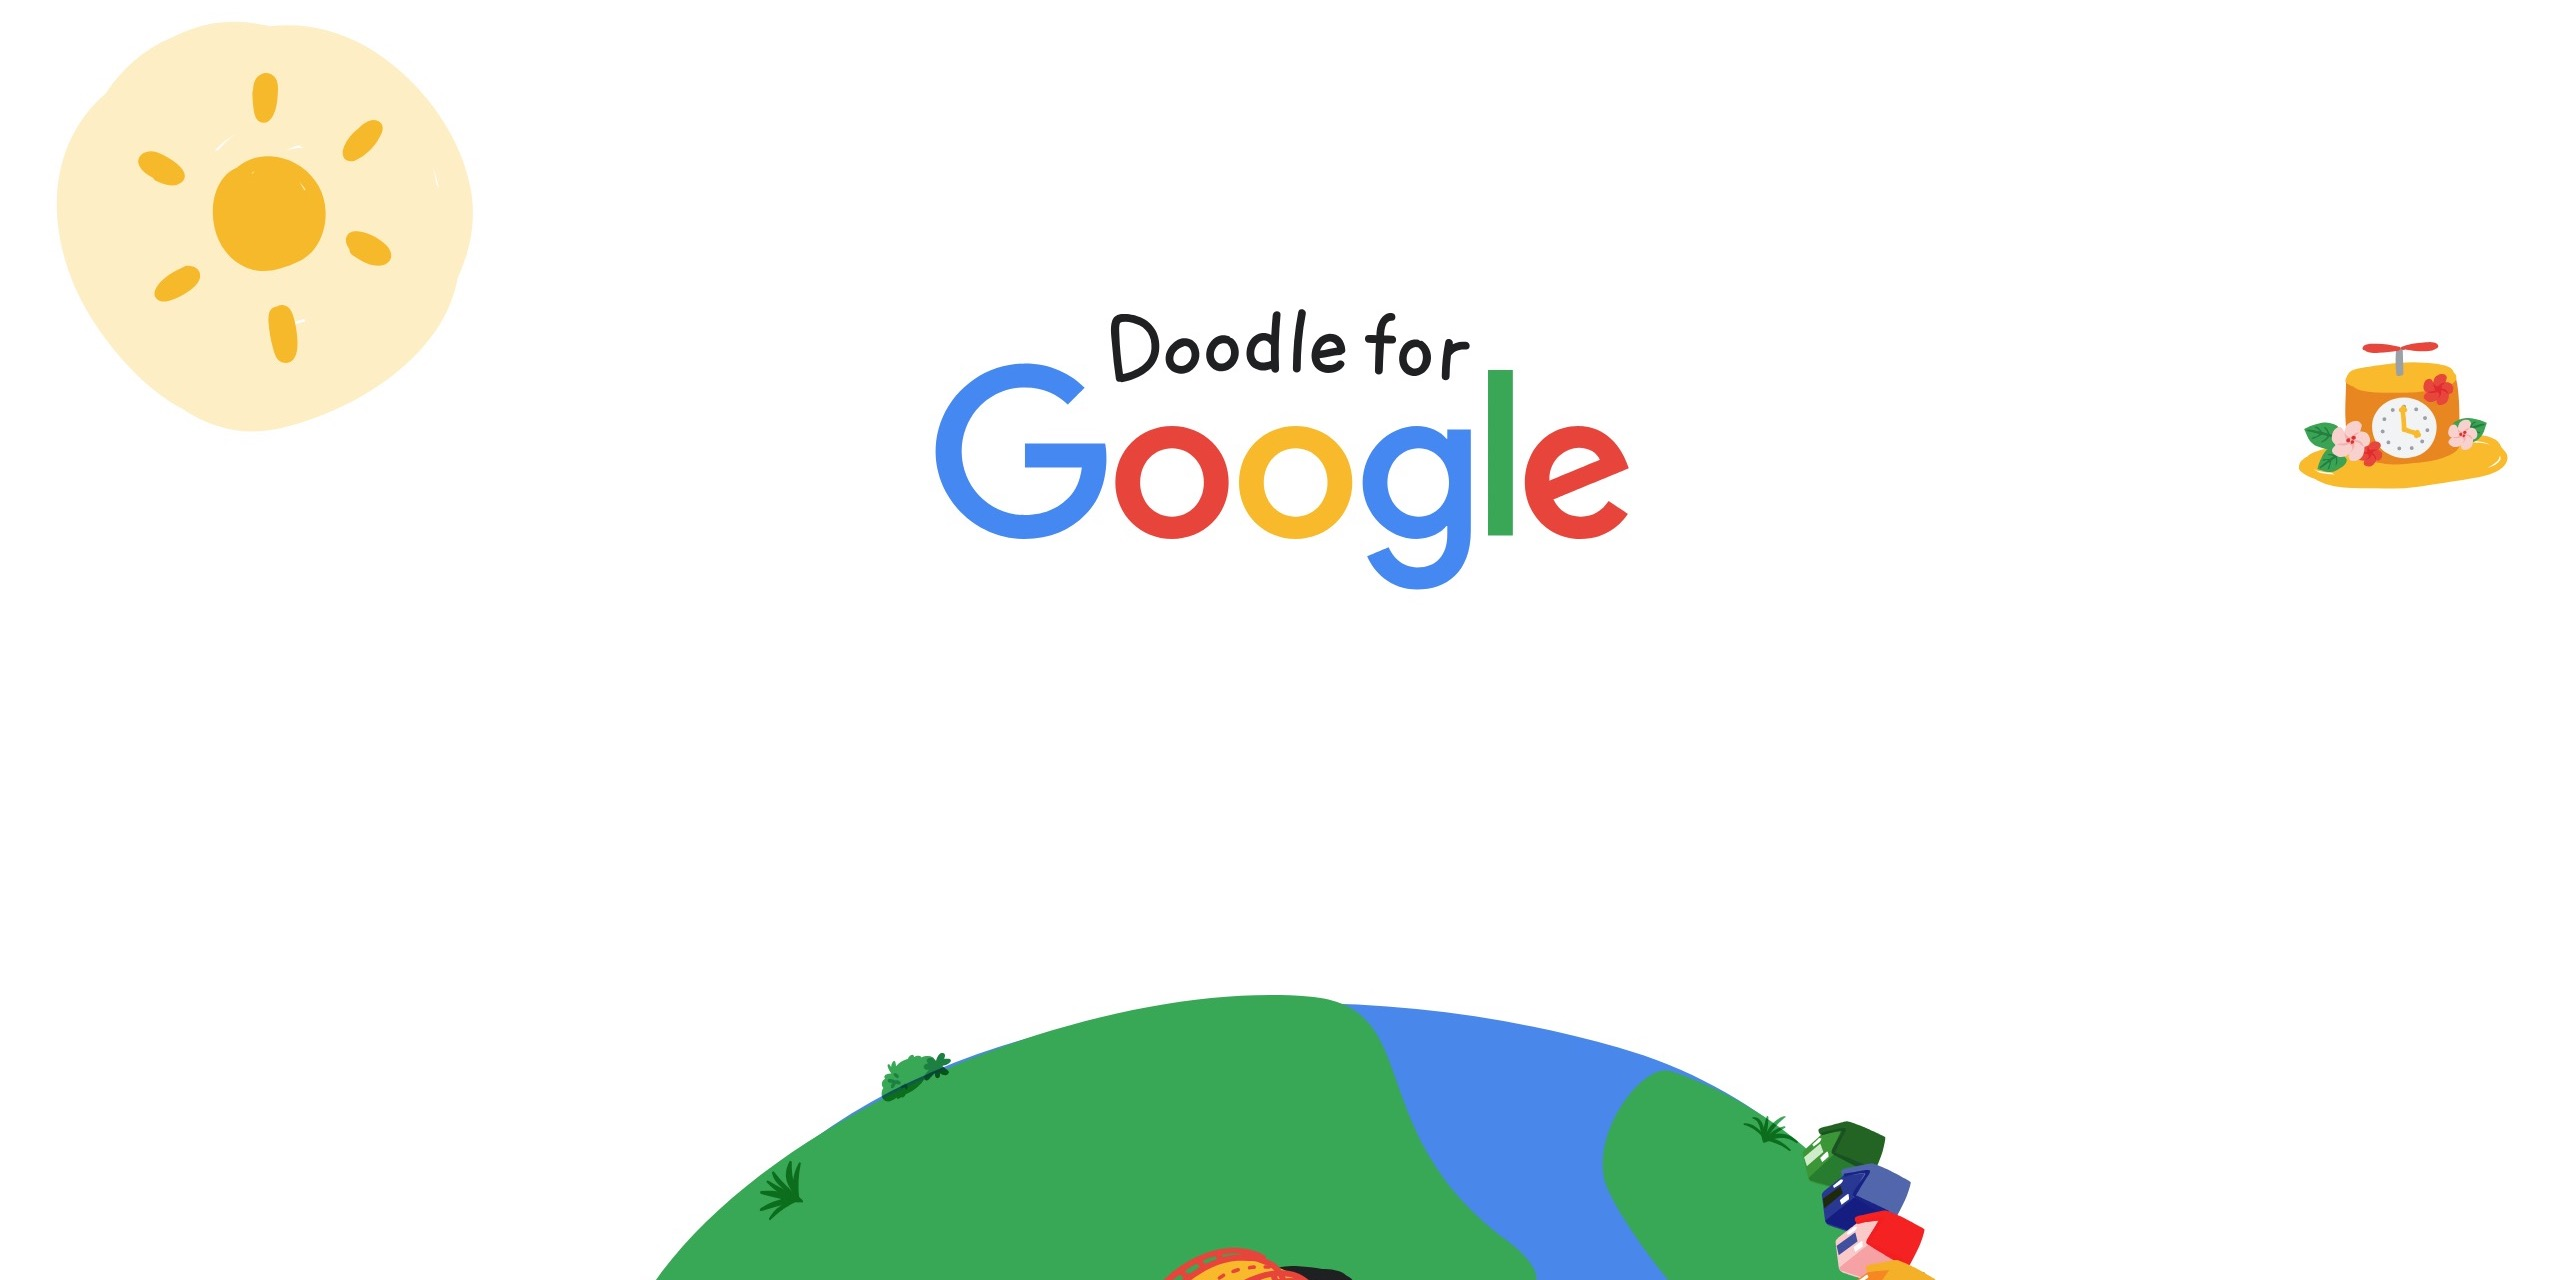 Doodle For Google 2019 Kicks Off With When I Grow Up I Hope Theme 9to5google